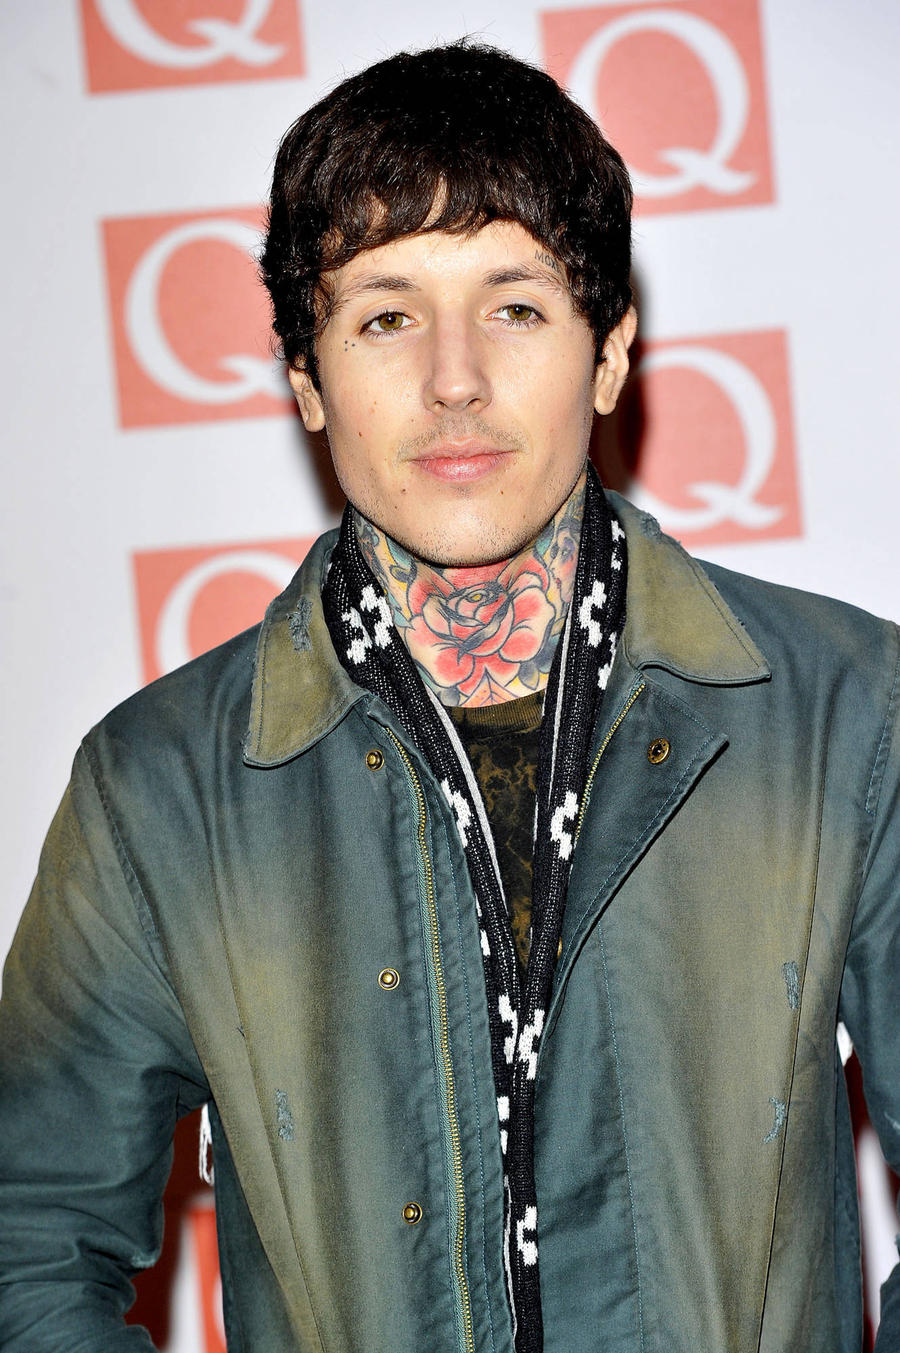 Oli Sykes: 'Coldplay Tried To Kick Us Out Of Nme Awards'